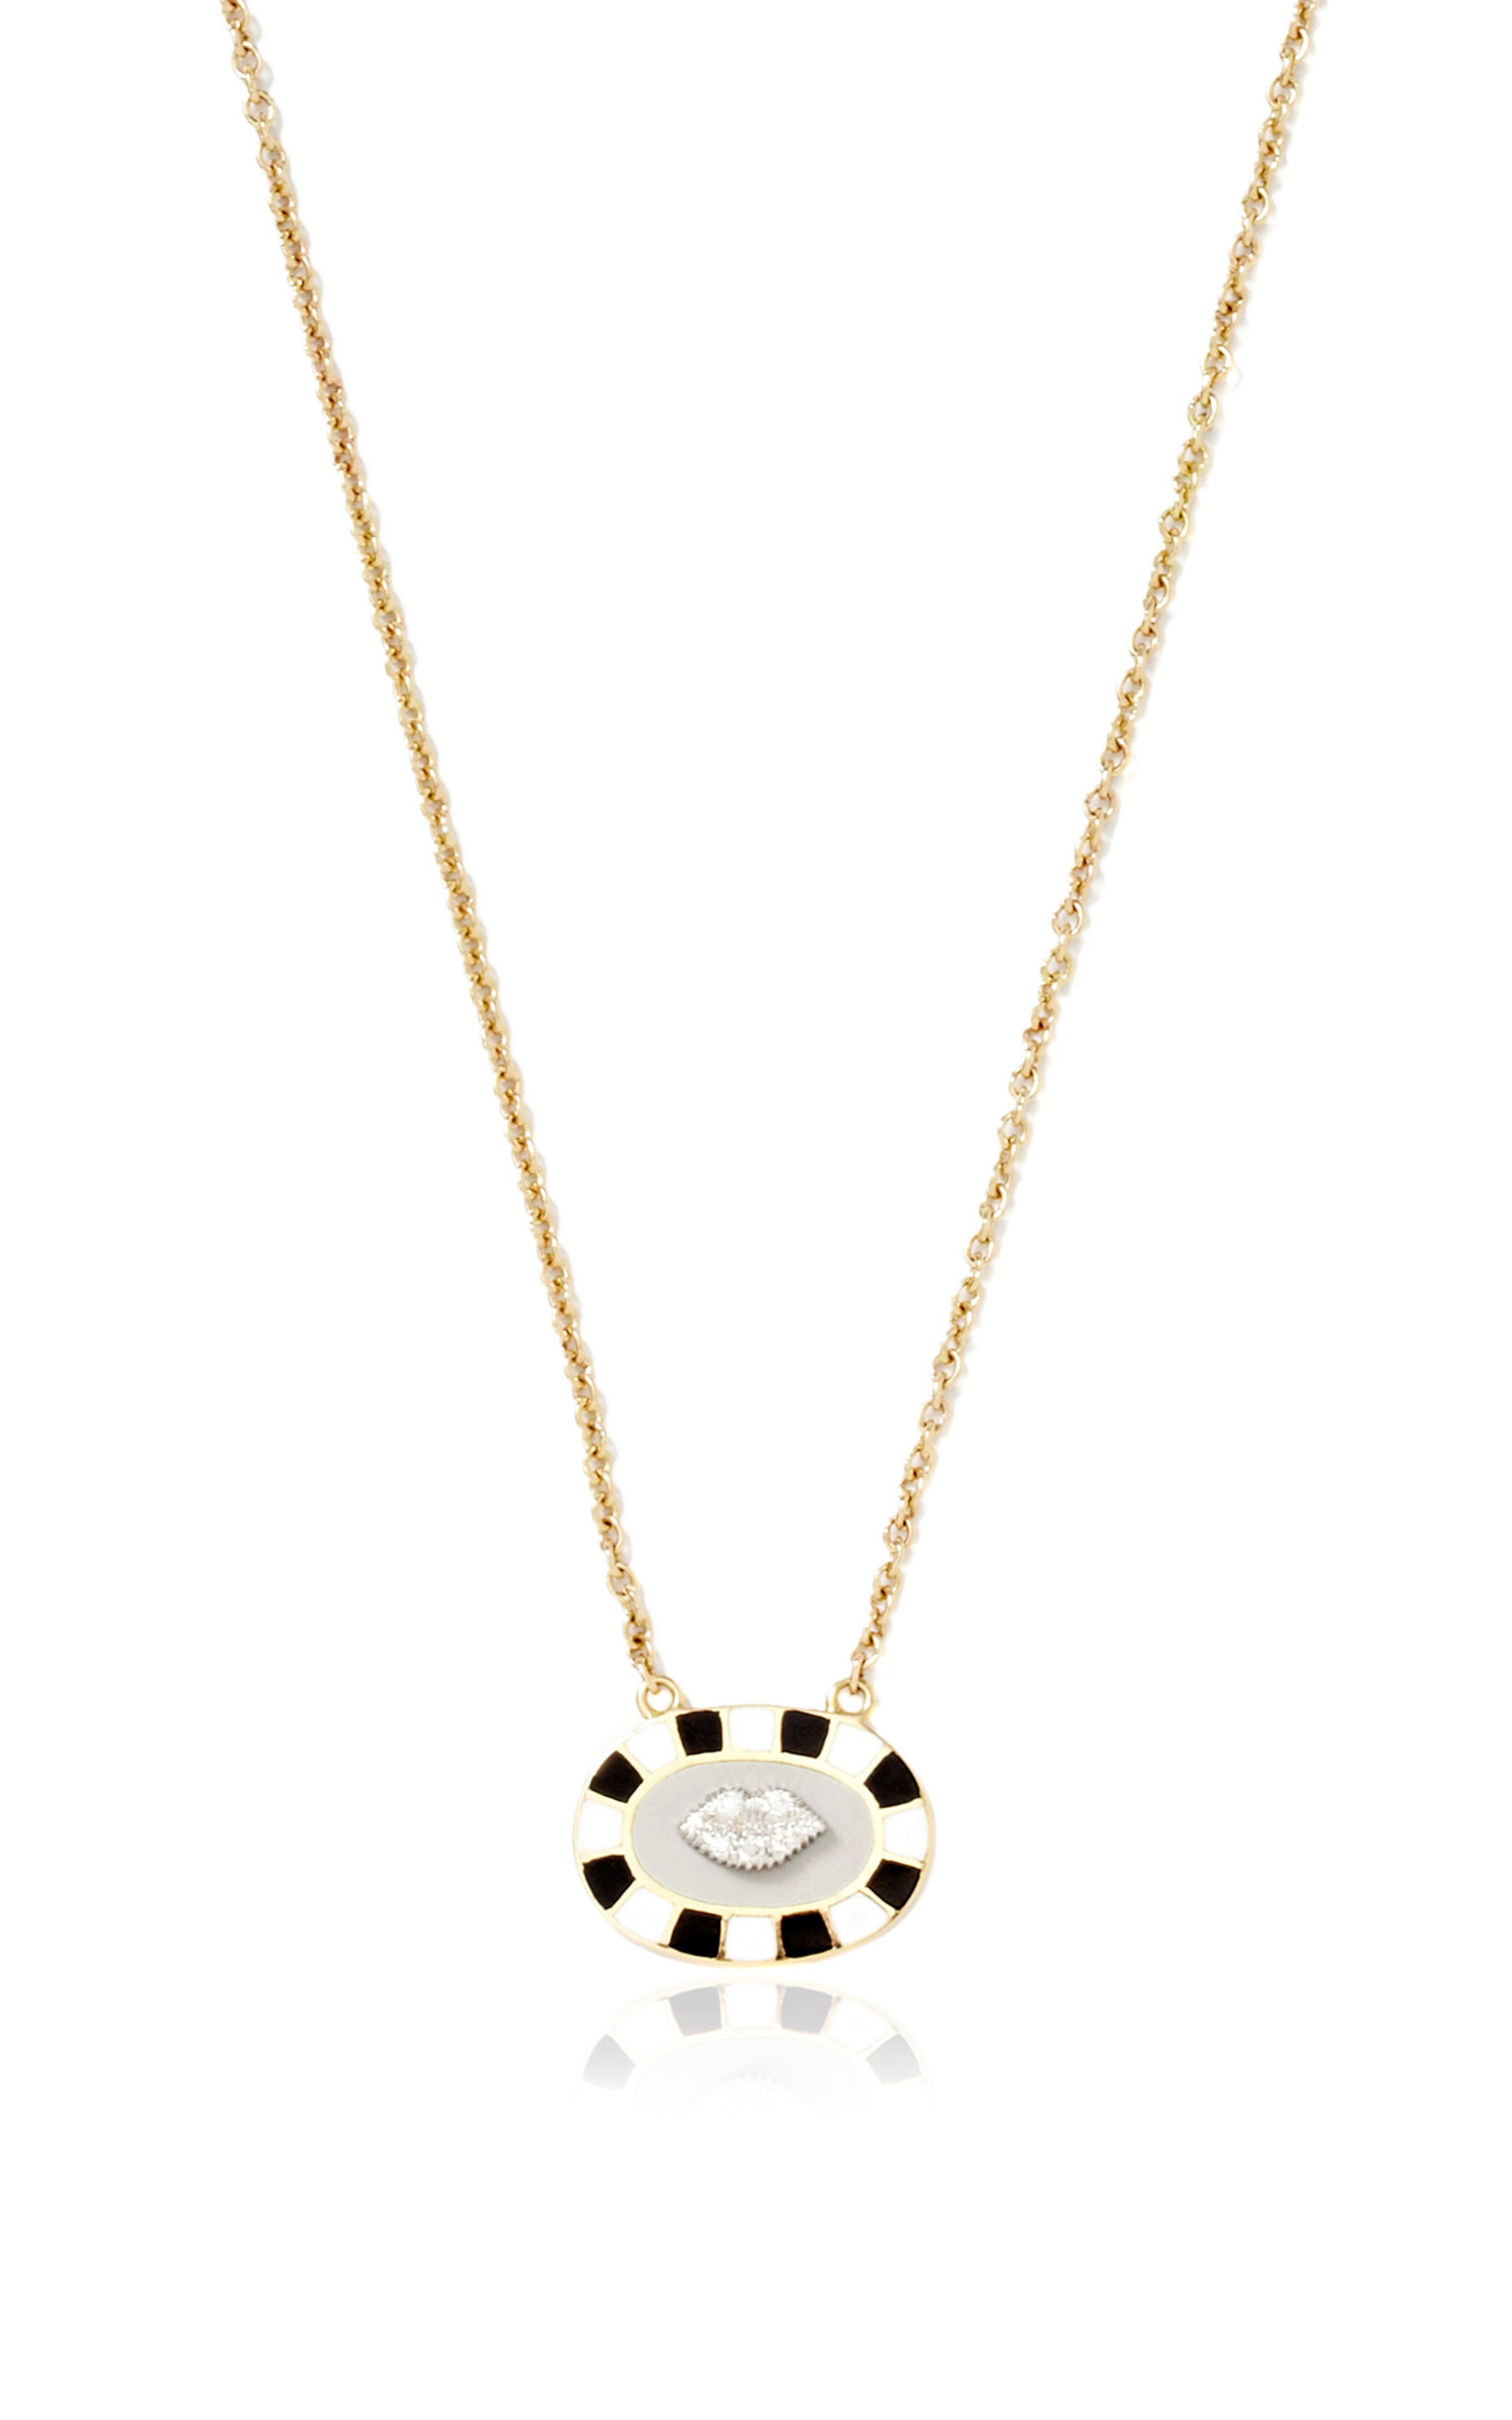 Holly Dyment Necklace with Mini Lip Pendant WBYB60ml